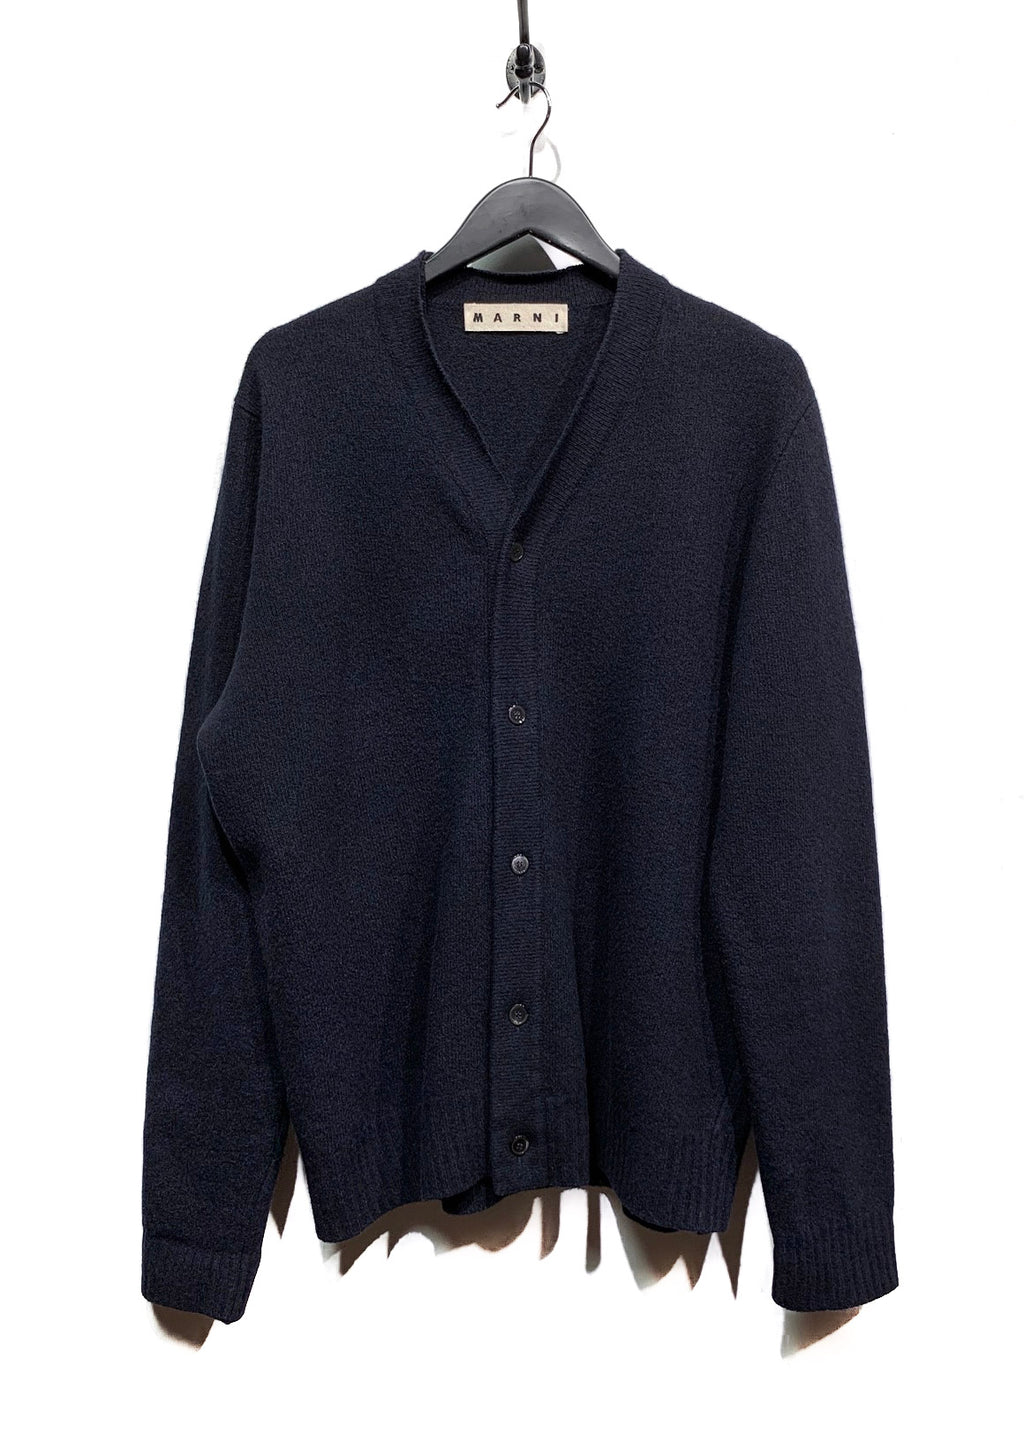 Marni Midnight Blue Wool Cashmere Blend Cardigan